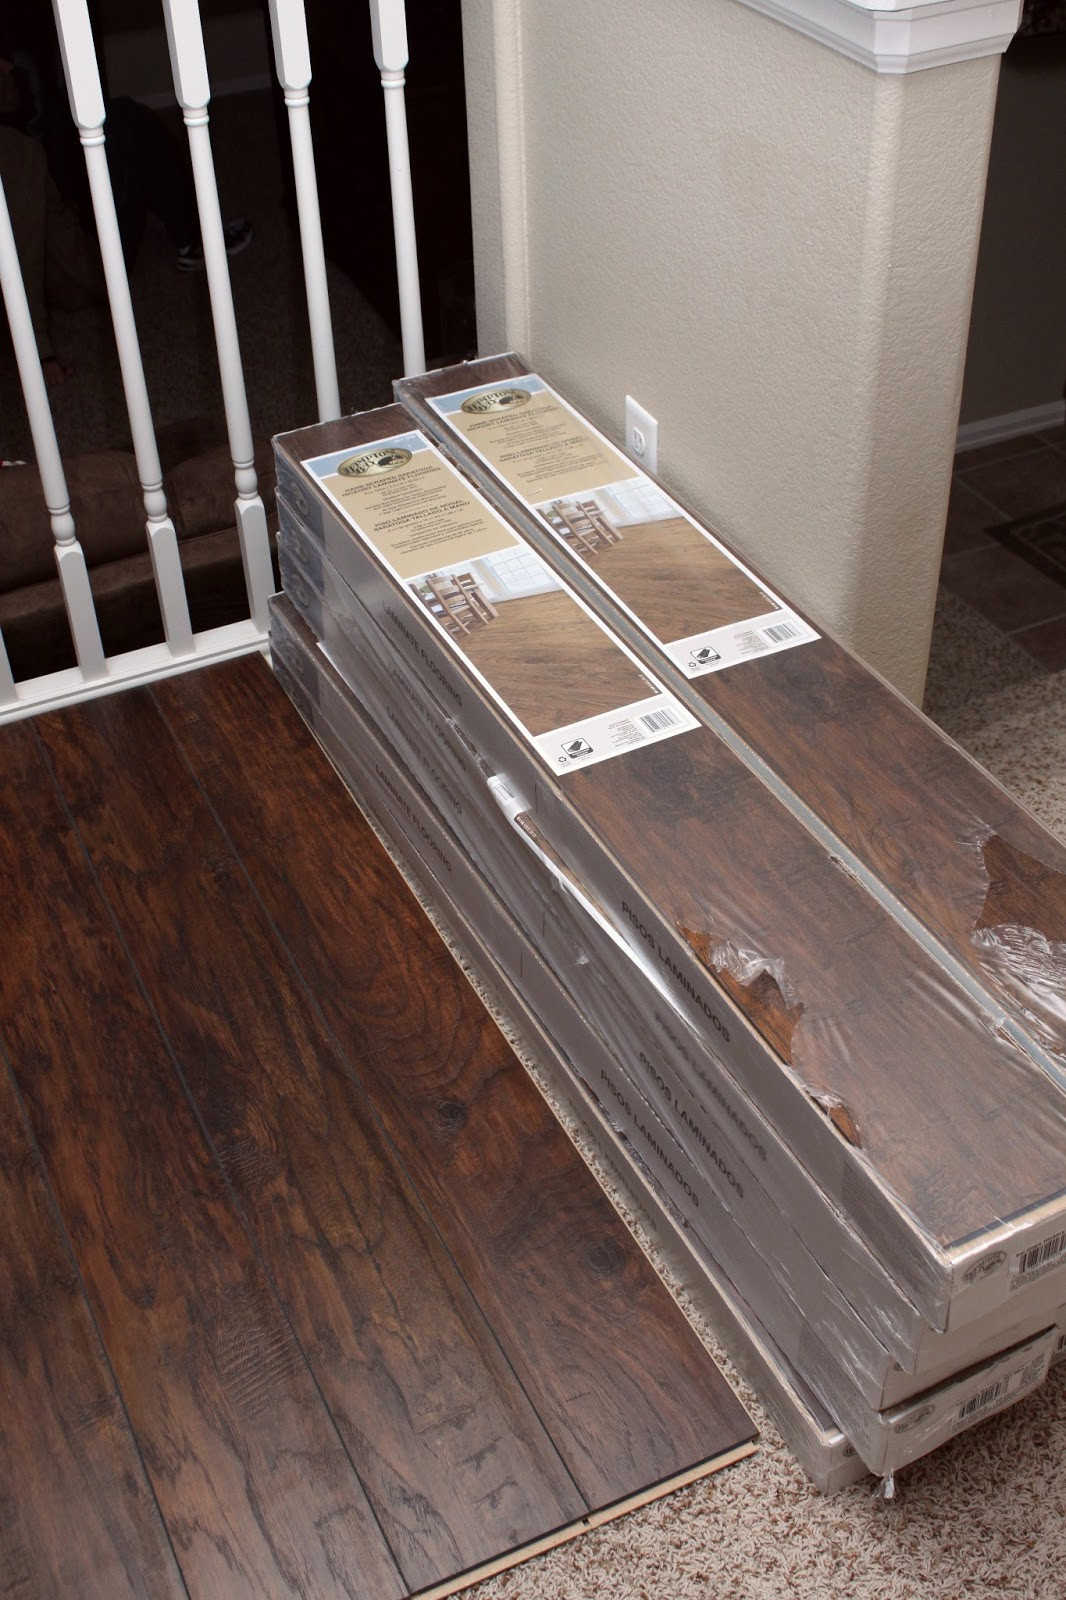 Best ideas about DIY Wood Floor . Save or Pin Our Modern Homestead DIY Laminate wood flooring project Now.